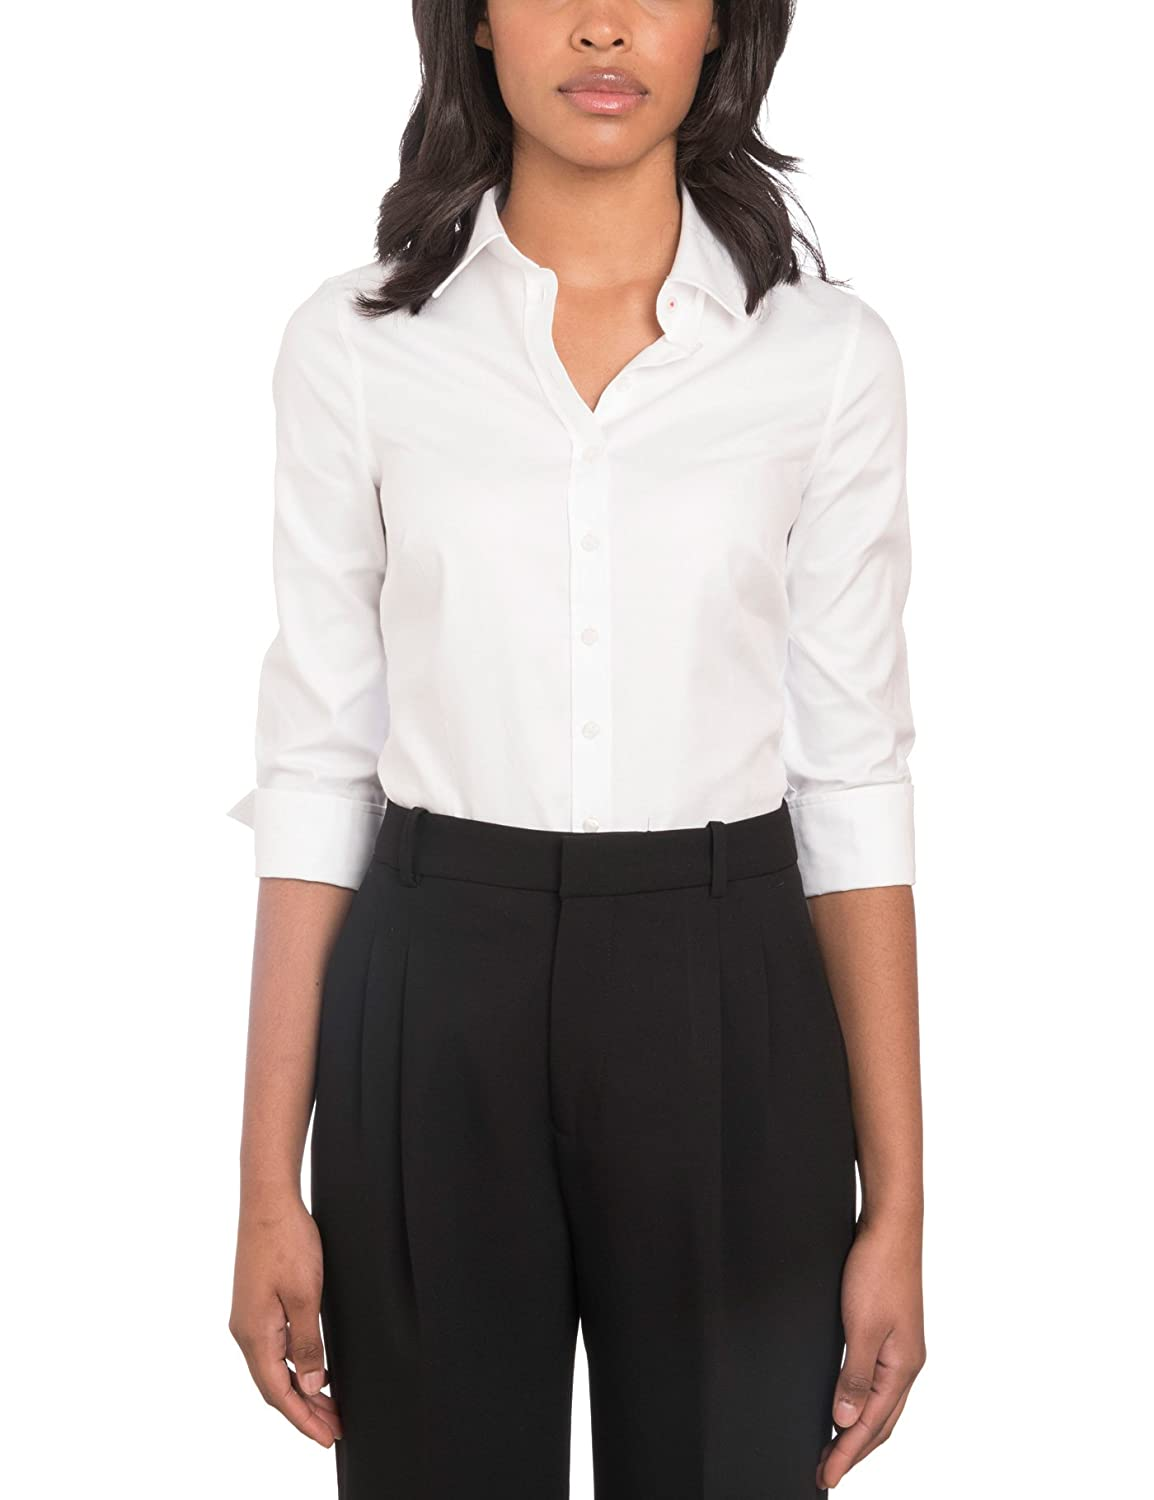 f1ad4273bc2af1 HAWES   CURTIS Womens White Twill Semi Fitted Cotton Shirt 3 Quarter Sleeve   Amazon.co.uk  Clothing